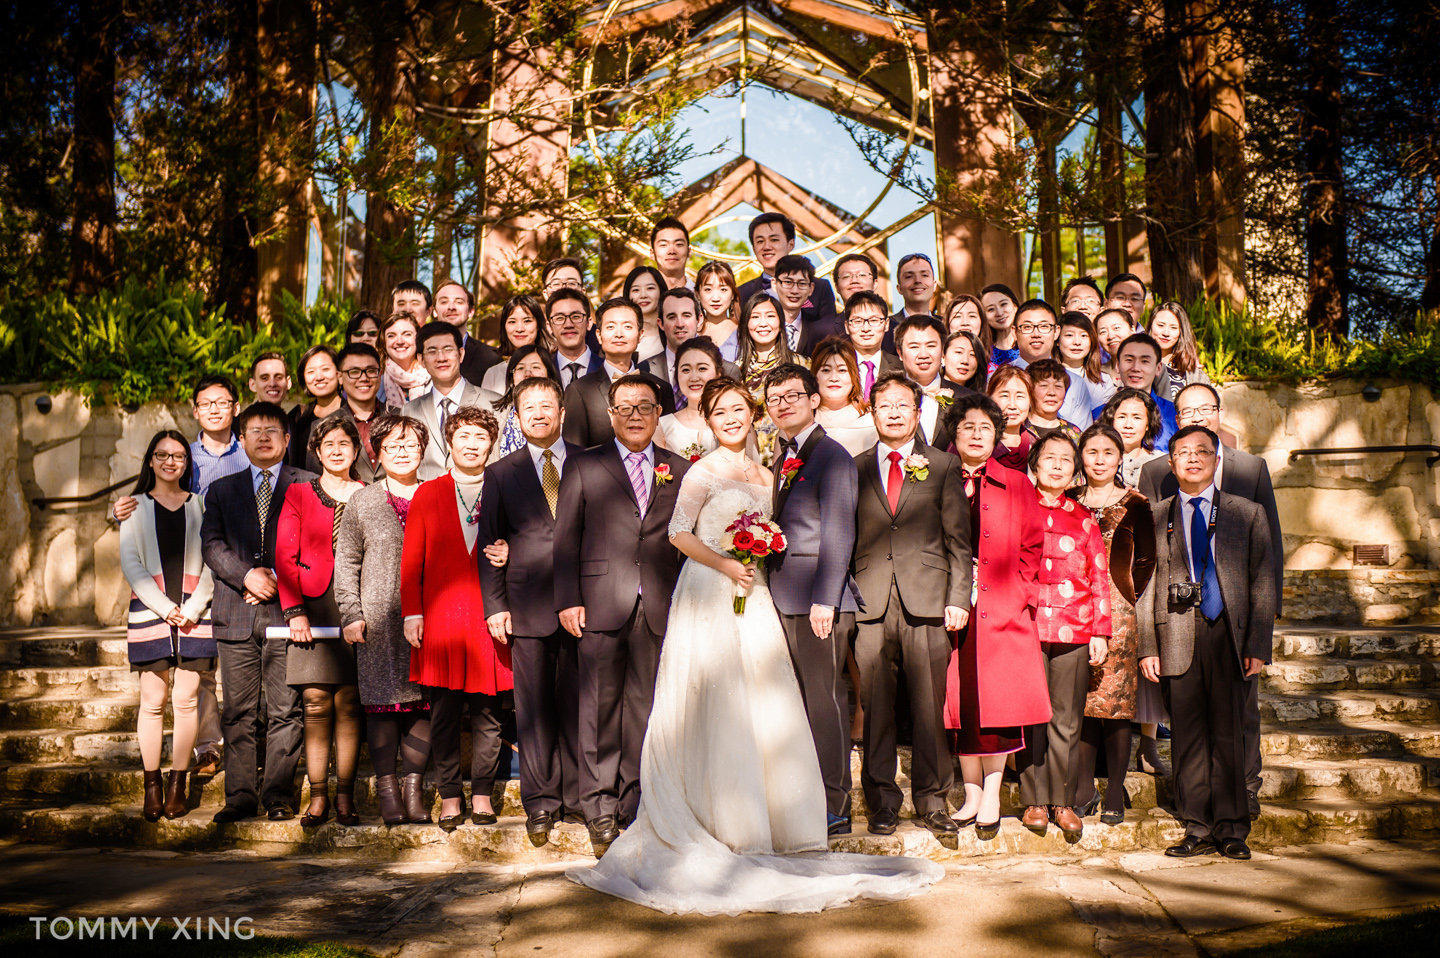 Los Angeles Wedding Photographer 洛杉矶婚礼婚纱摄影师 Tommy Xing-161.JPG